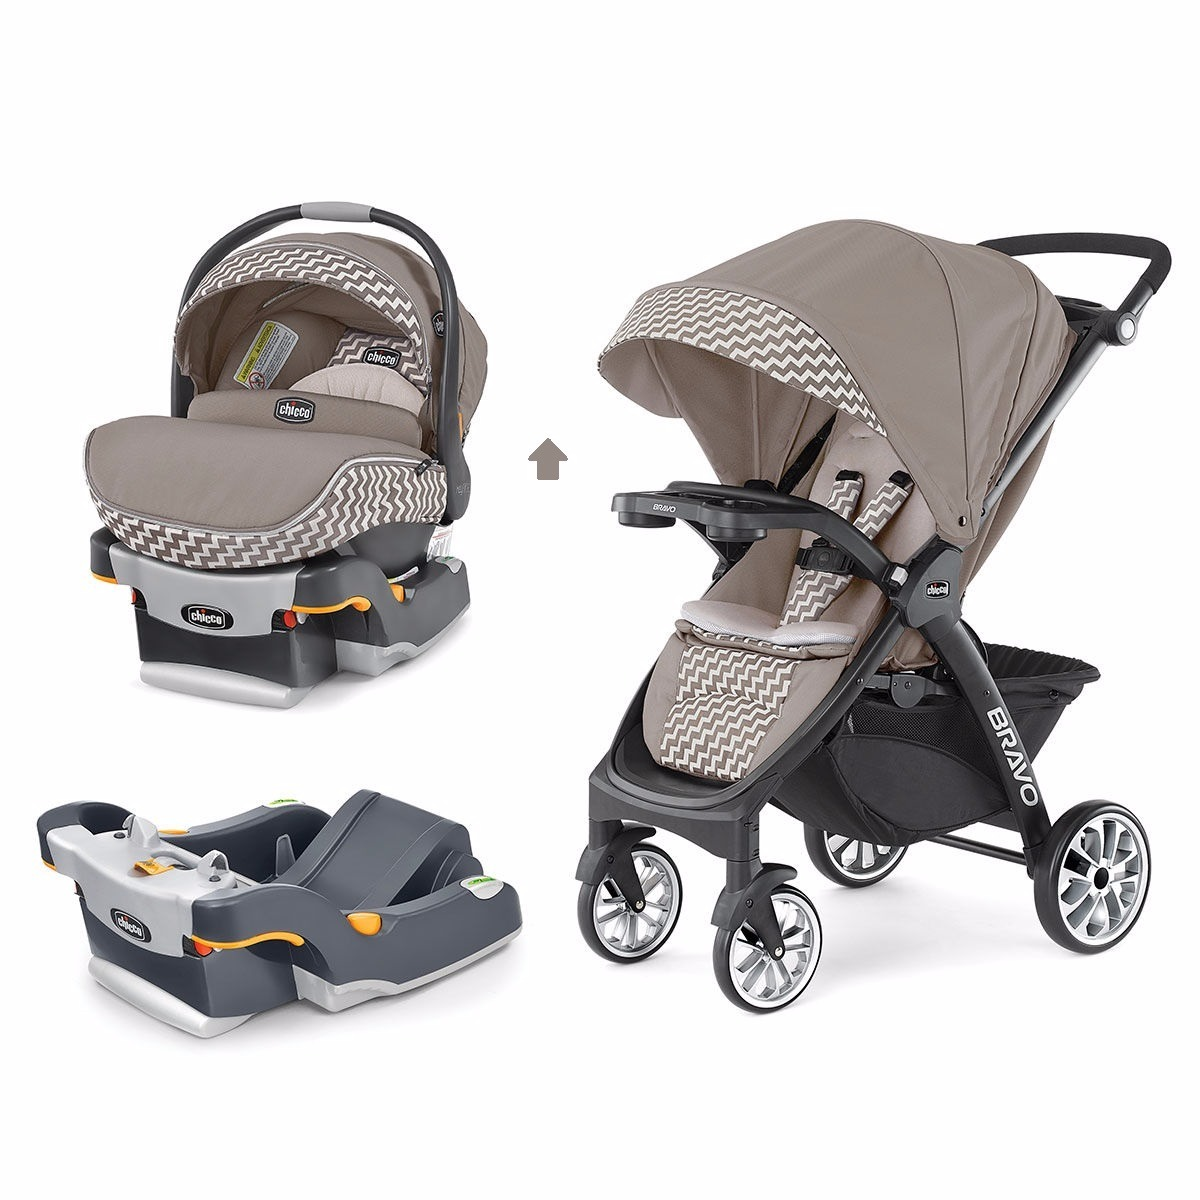 Baby Chicco Car Seat Carriola Bravo 3 En 1 Chicco Singapore Con Portabebe Y